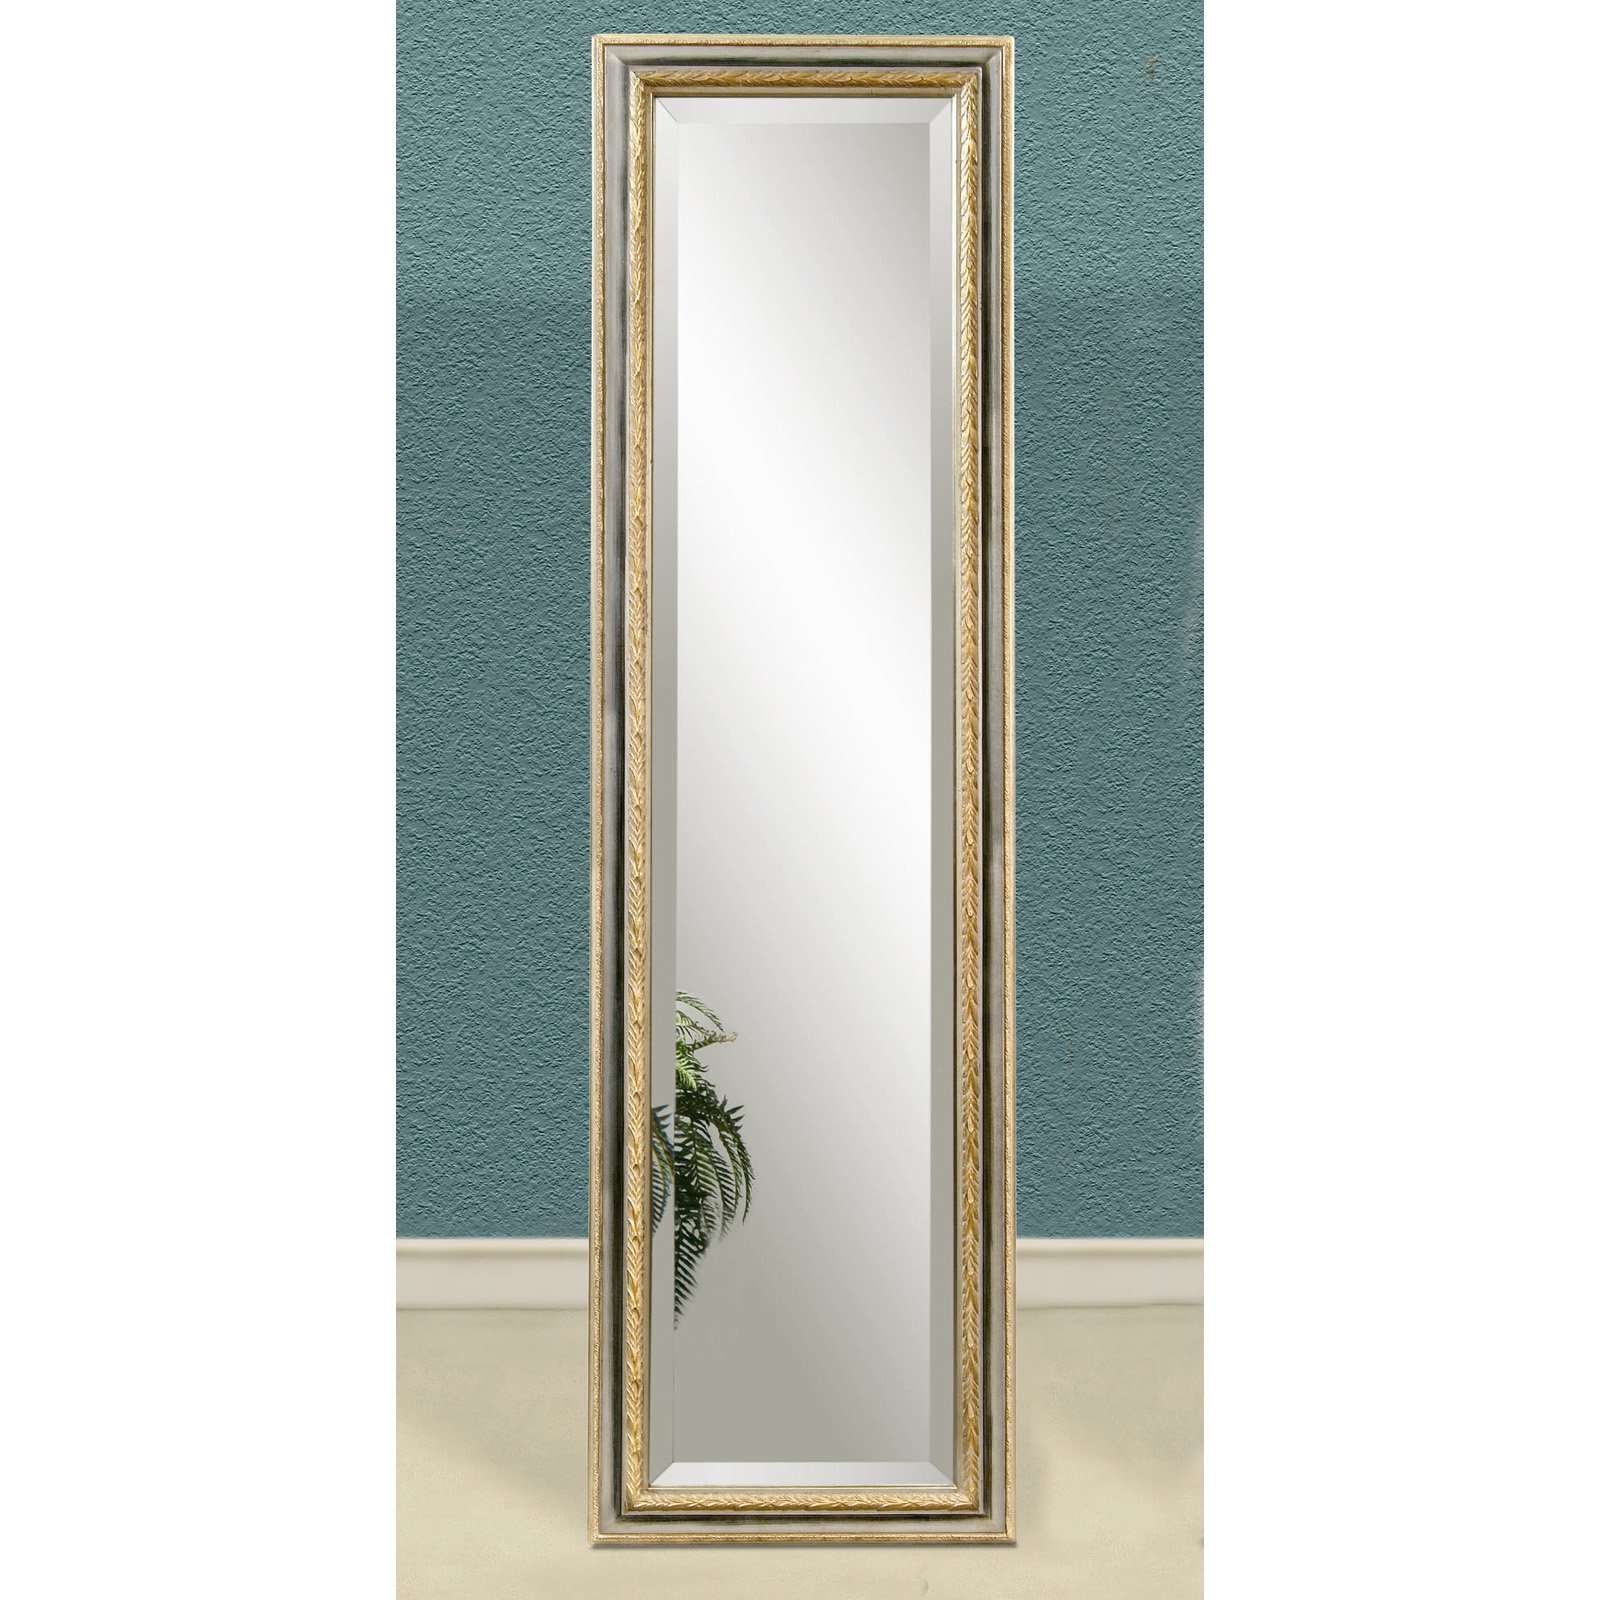 Silver Gold Full Length Cheval Floor Mirror 18w X 64h In Com